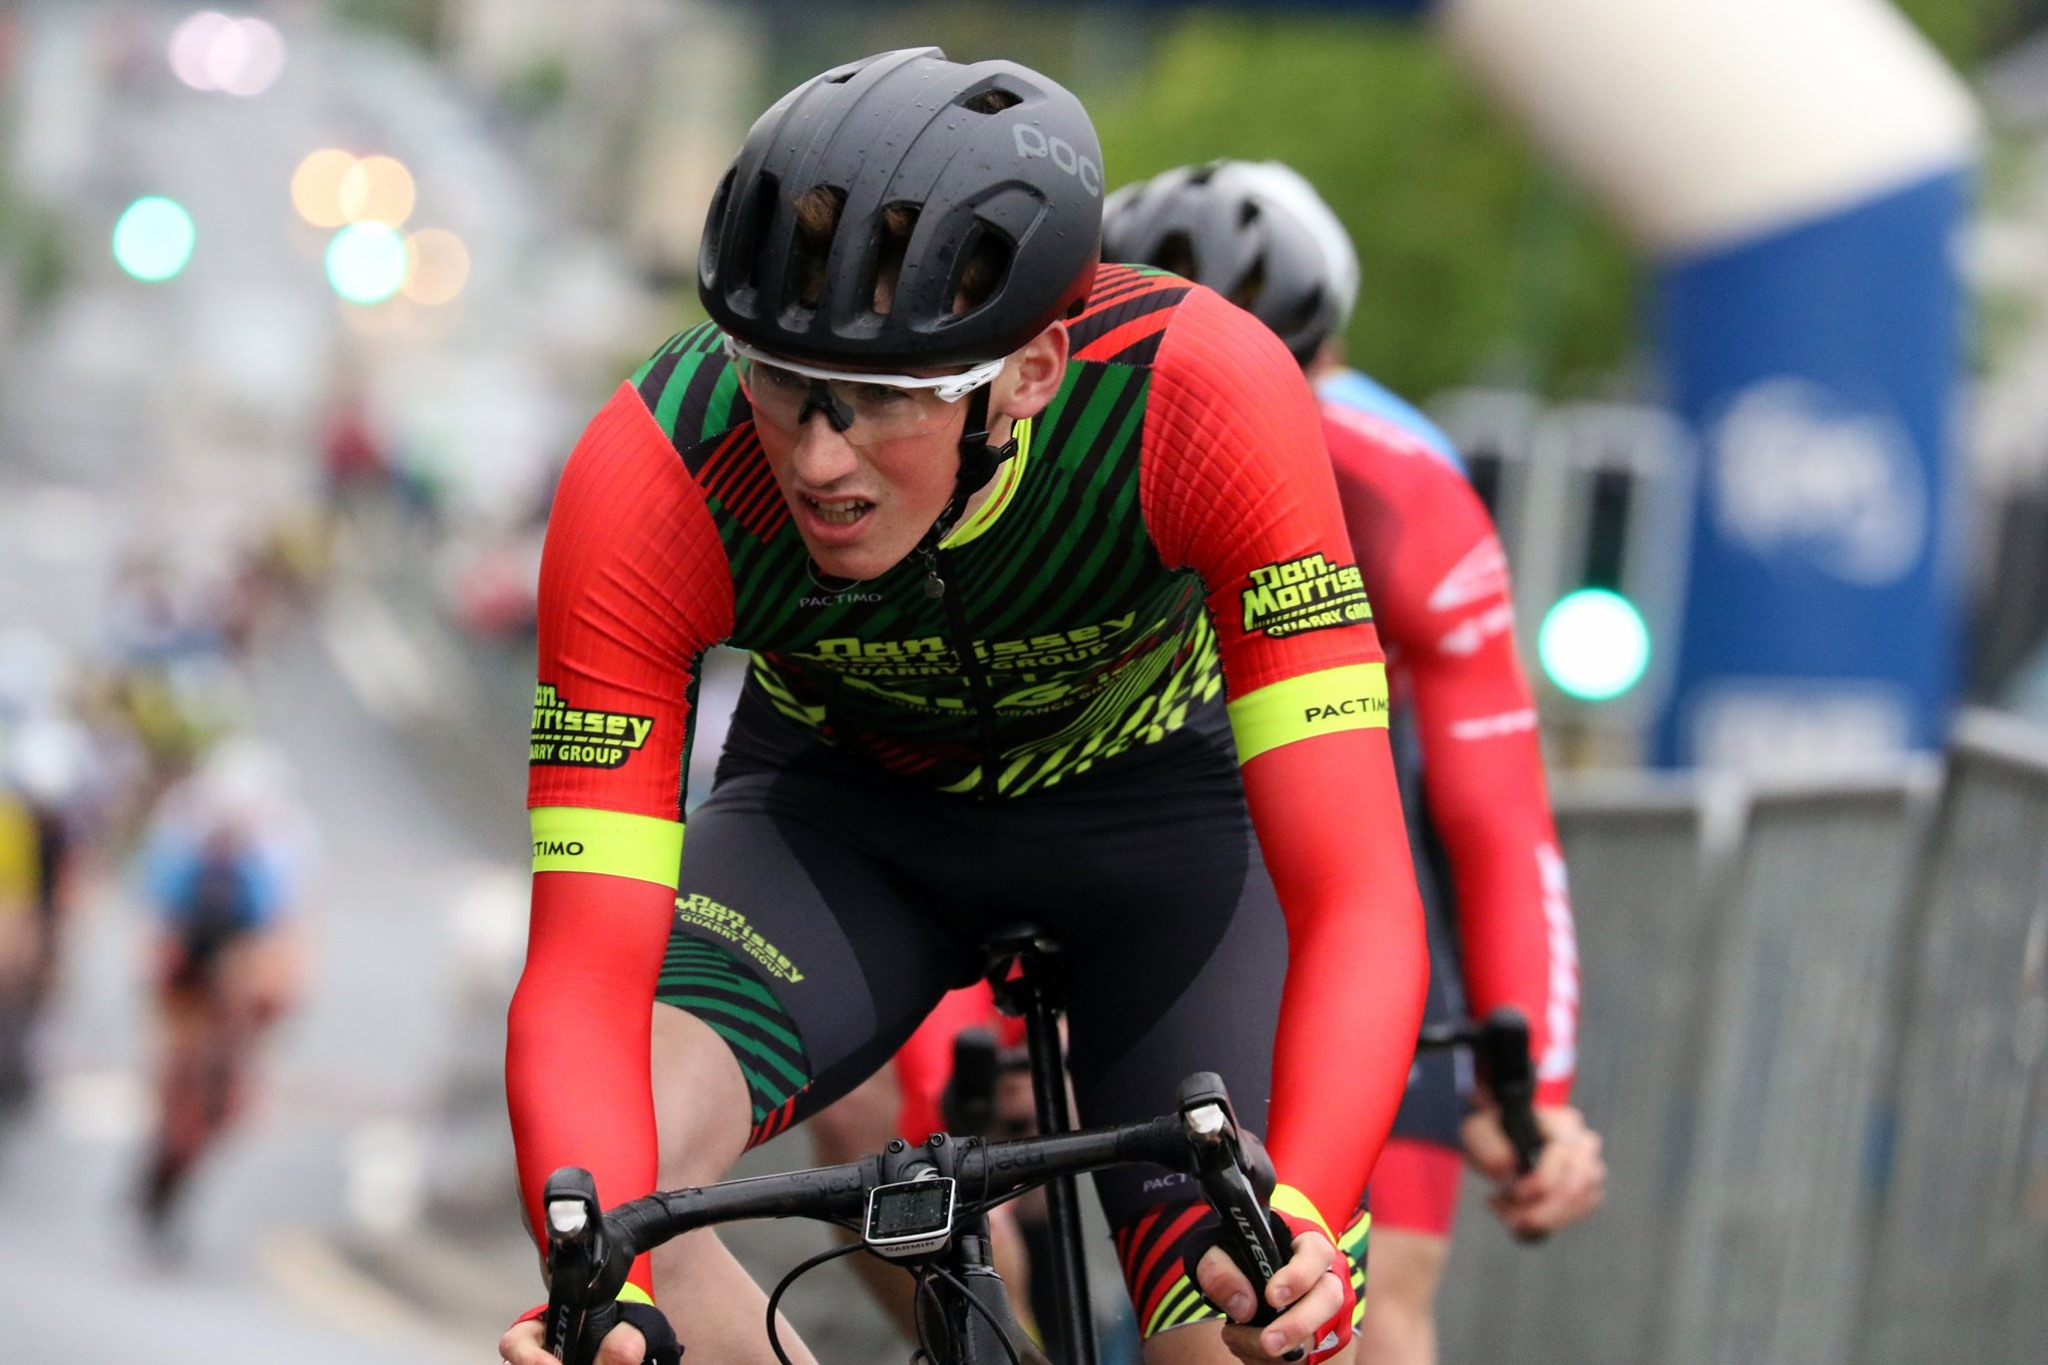 James Curry in action at the recent Ulster Criterium Championships (photo courtesy of Toby Watson)